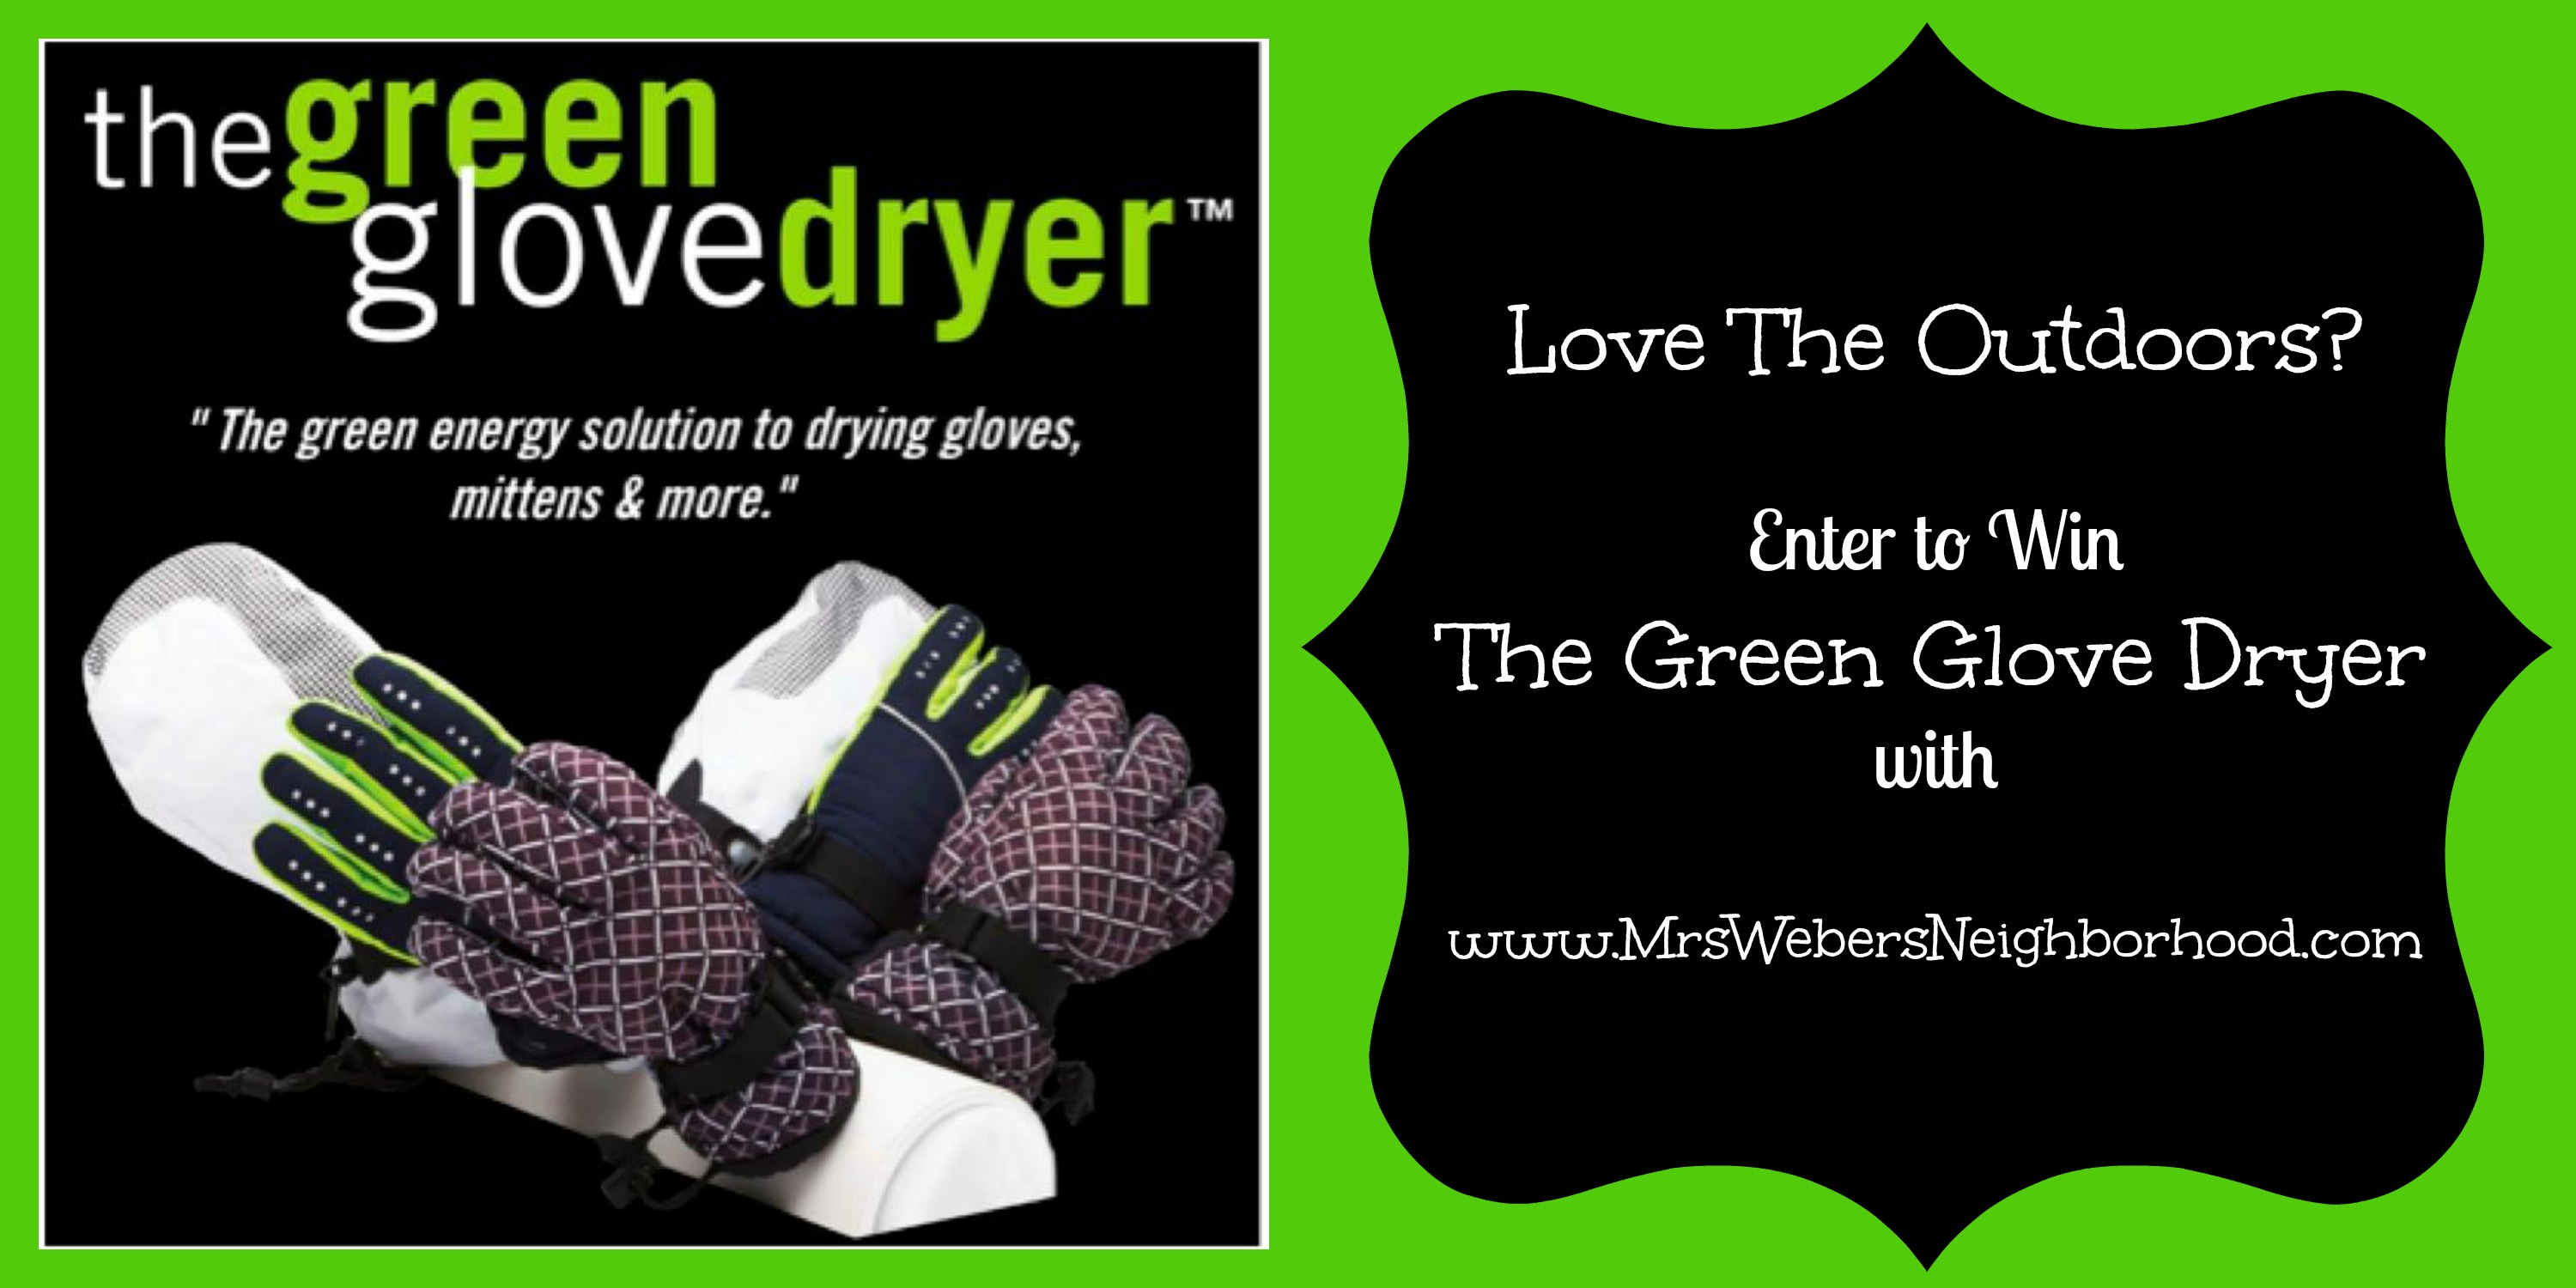 The Green Glove Dryer Giveaway